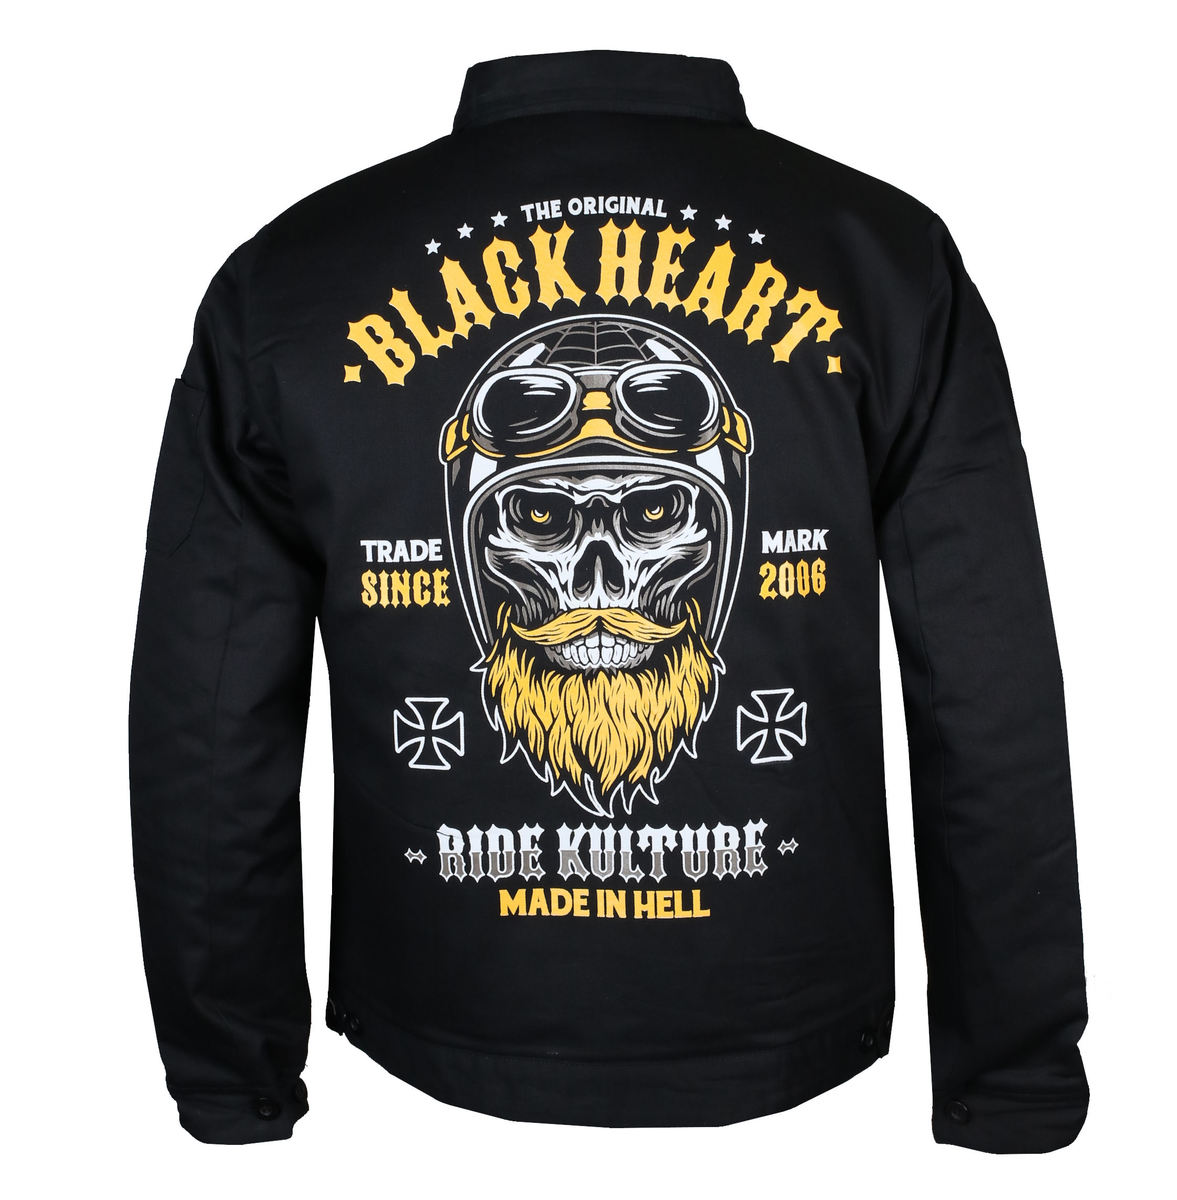 bunda jarněpodzimní BLACK HEART WHISKERY M